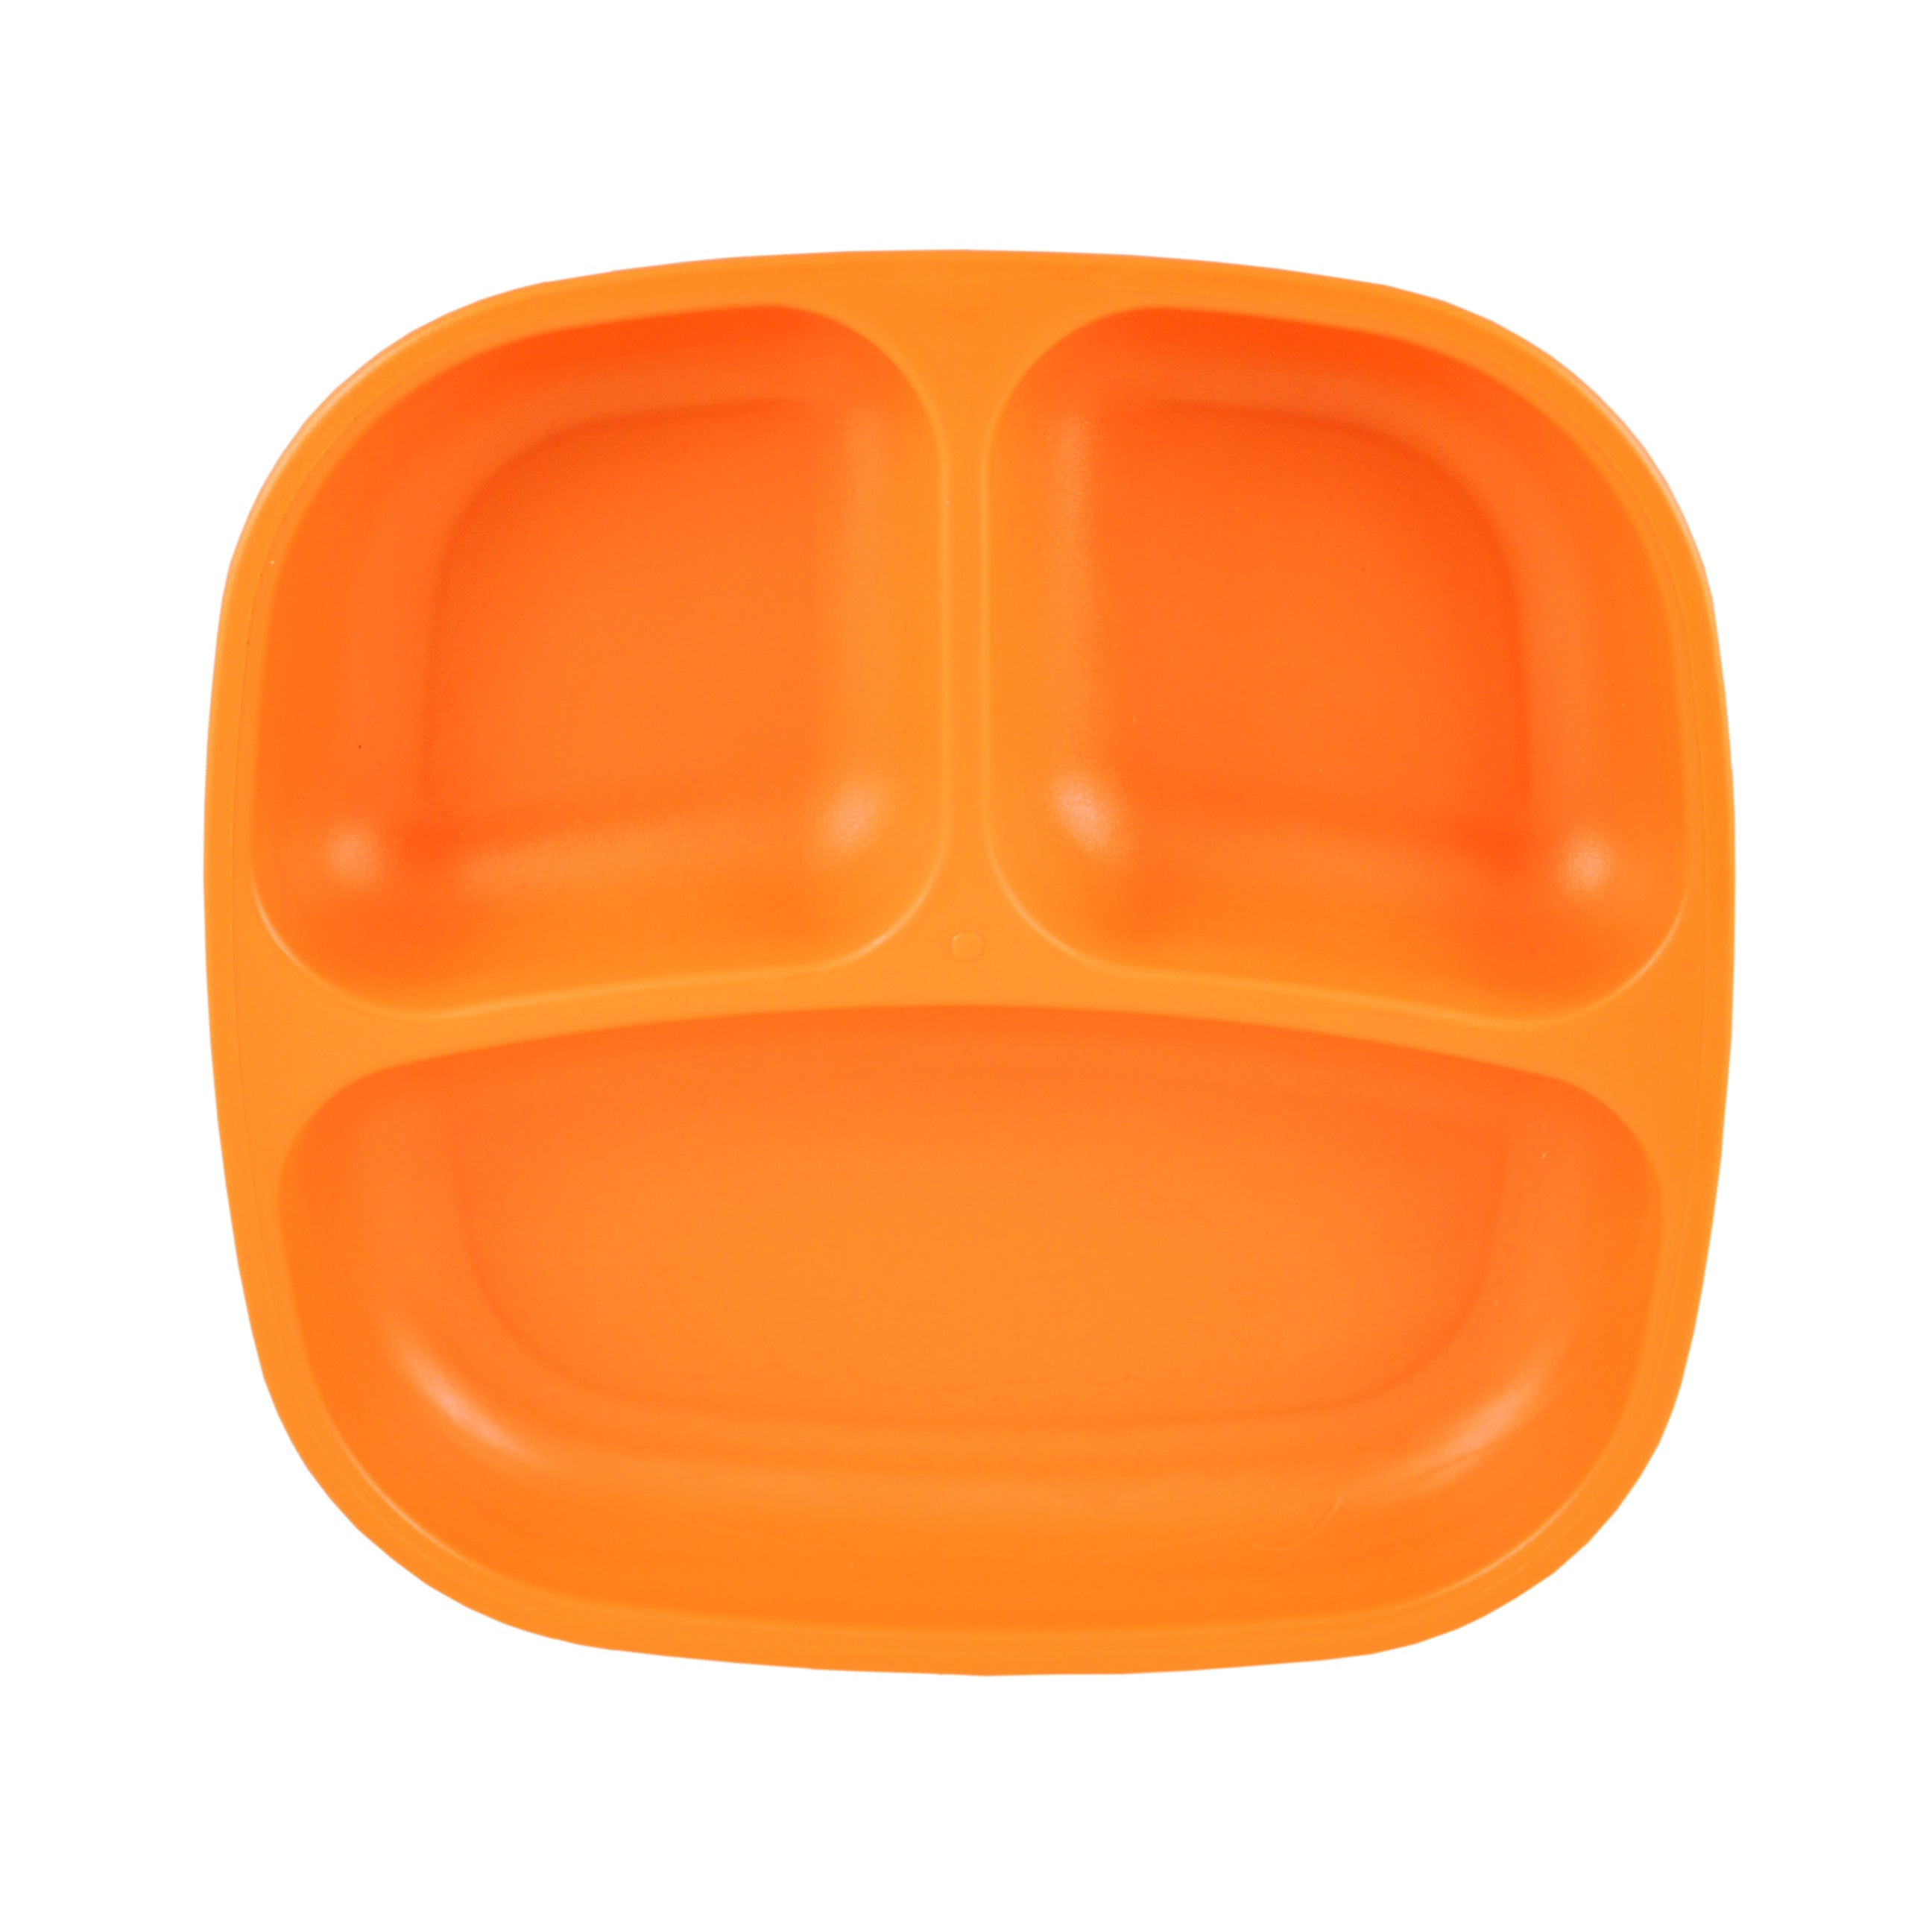 "Re-Play 7"" Divided Plate - Orange"